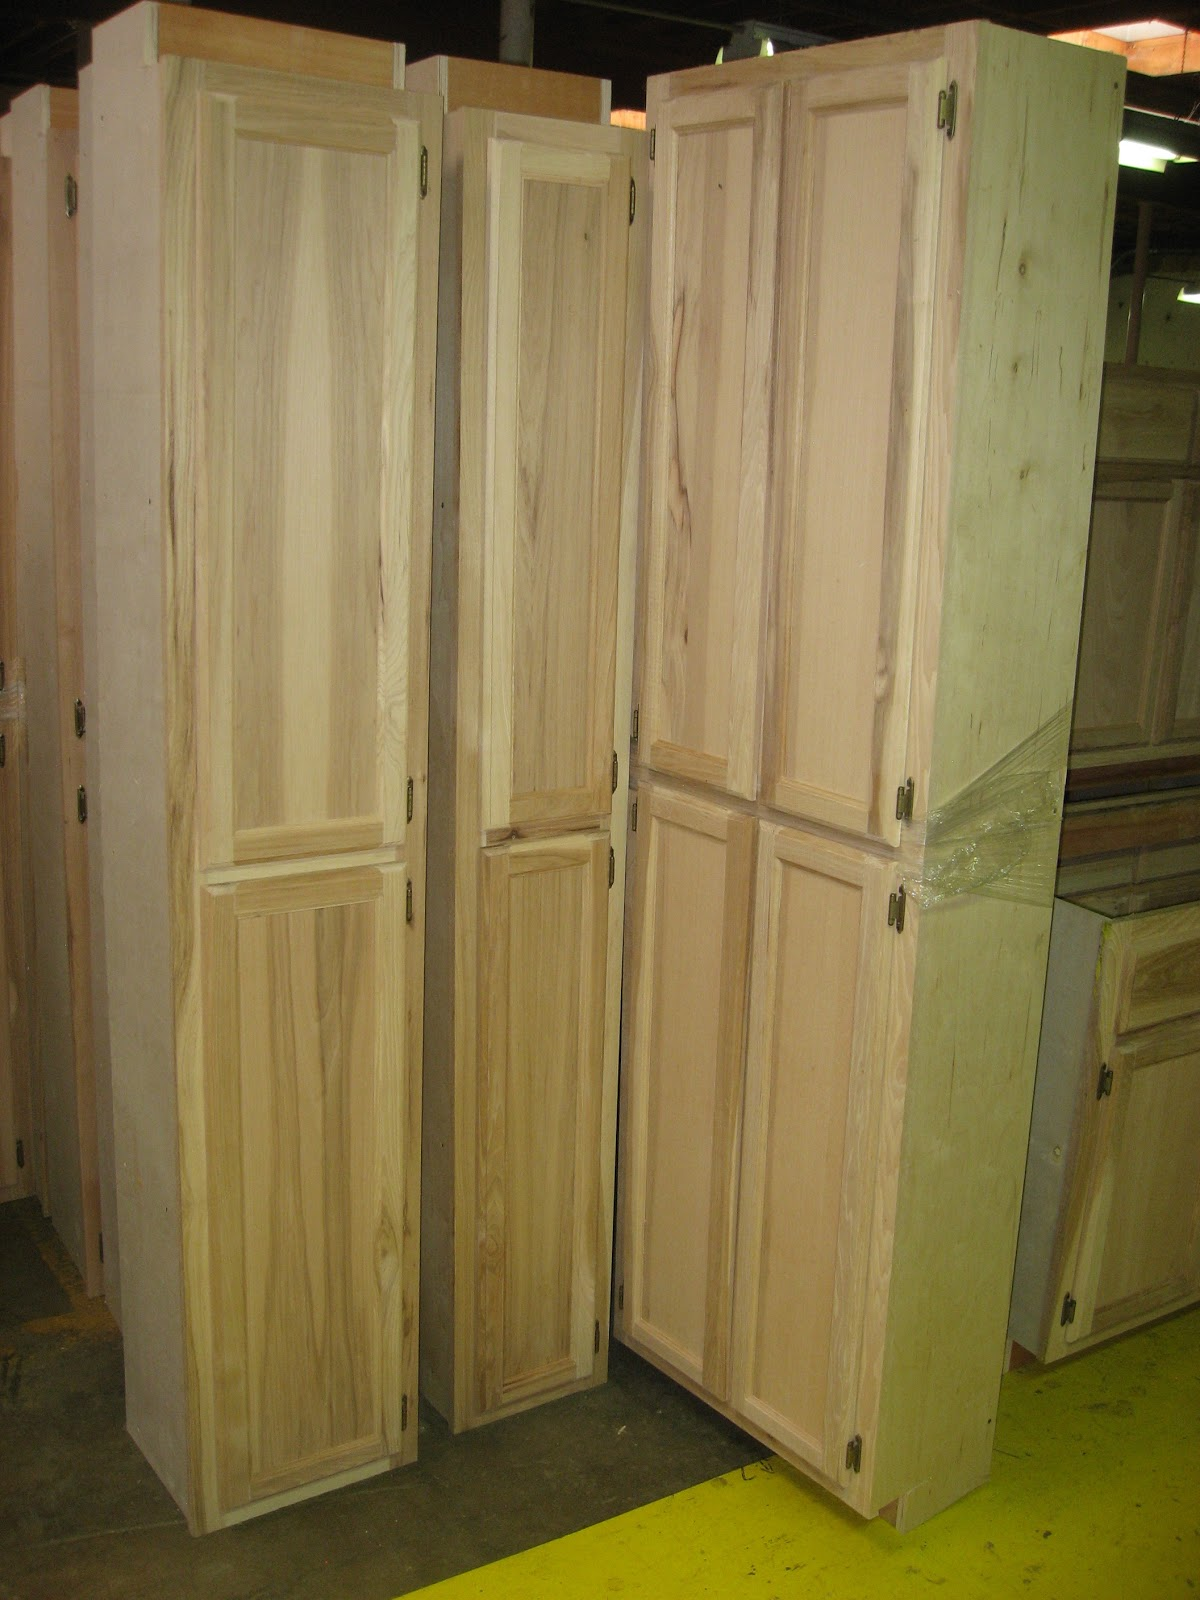 Discount Replacement Kitchen Cabinet Doors Cherry Cabinets Blue Ridge Surplus: Hickory Unfinished